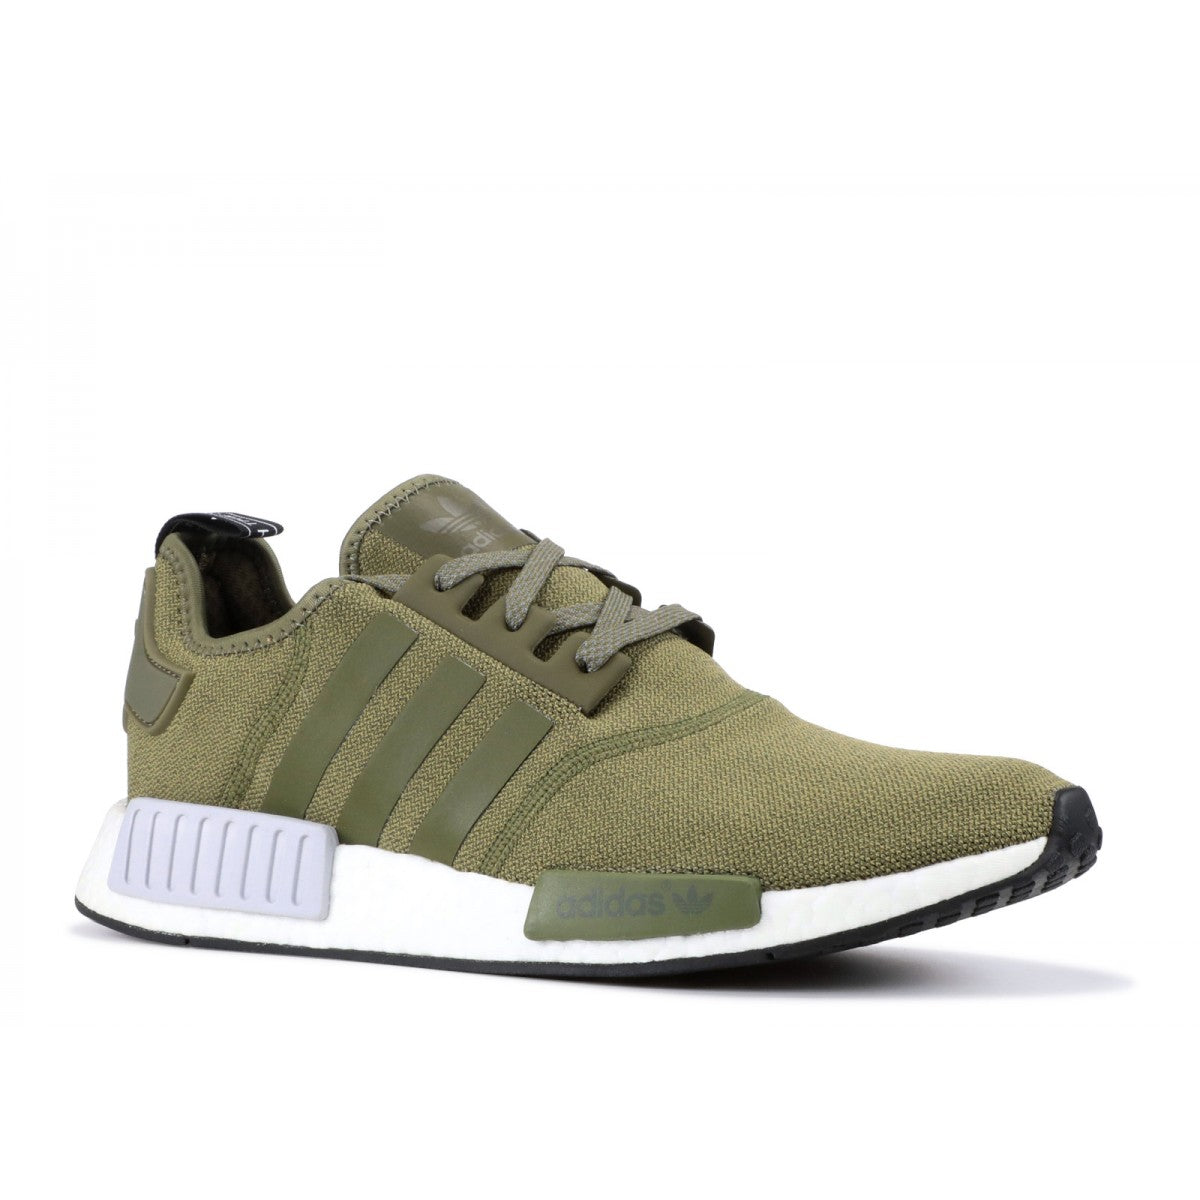 newest 4c6d7 3c7d8 Adidas NMD R1 'Olive Cargo Green'